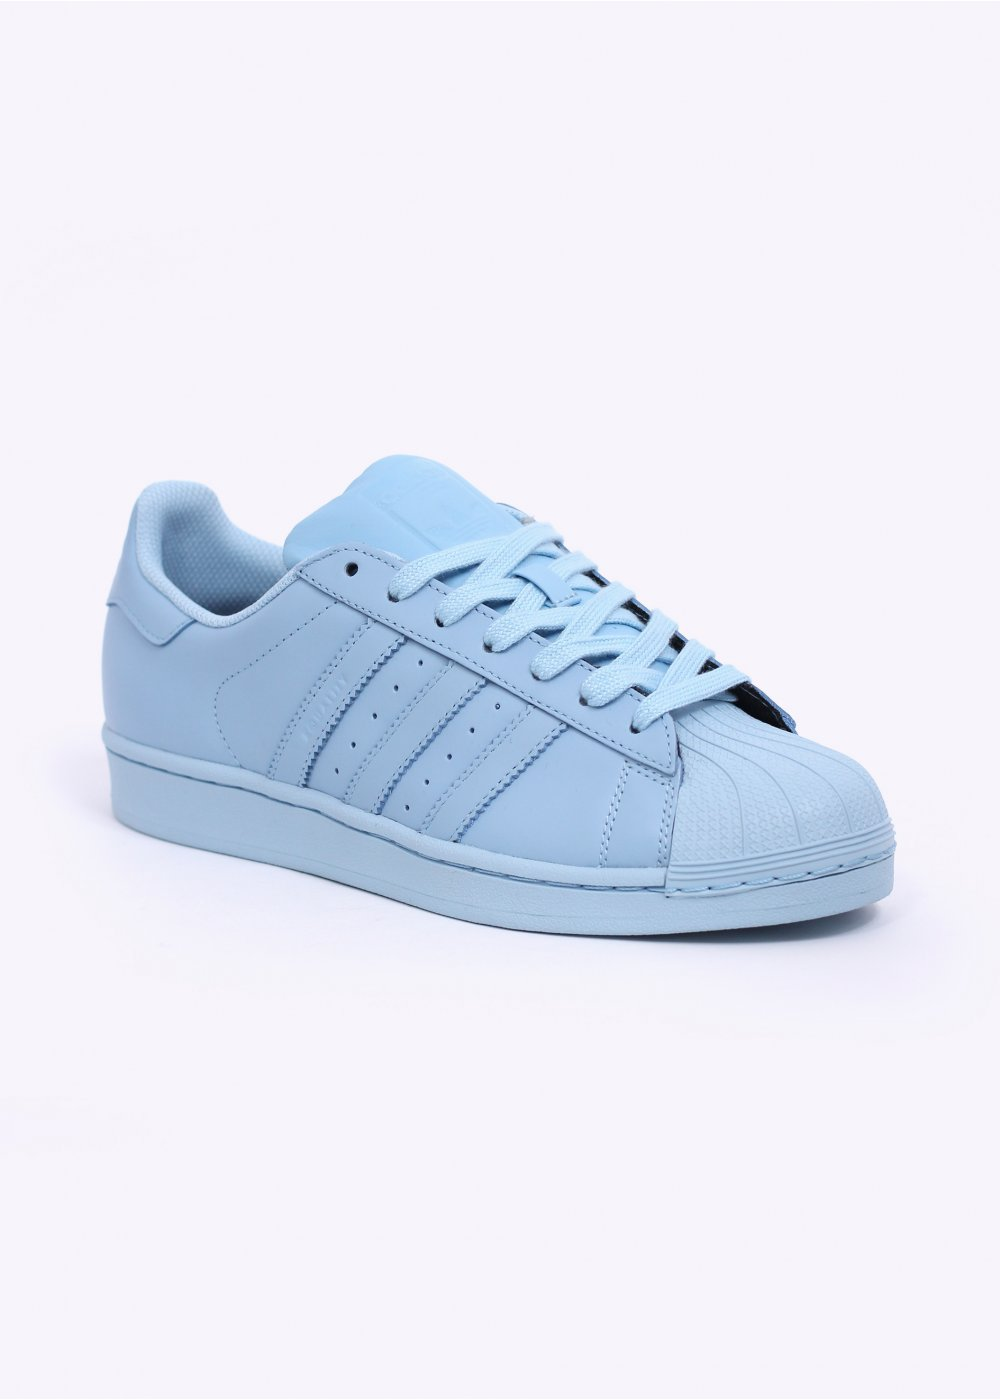 adidas superstar supercolor blue sky. Black Bedroom Furniture Sets. Home Design Ideas